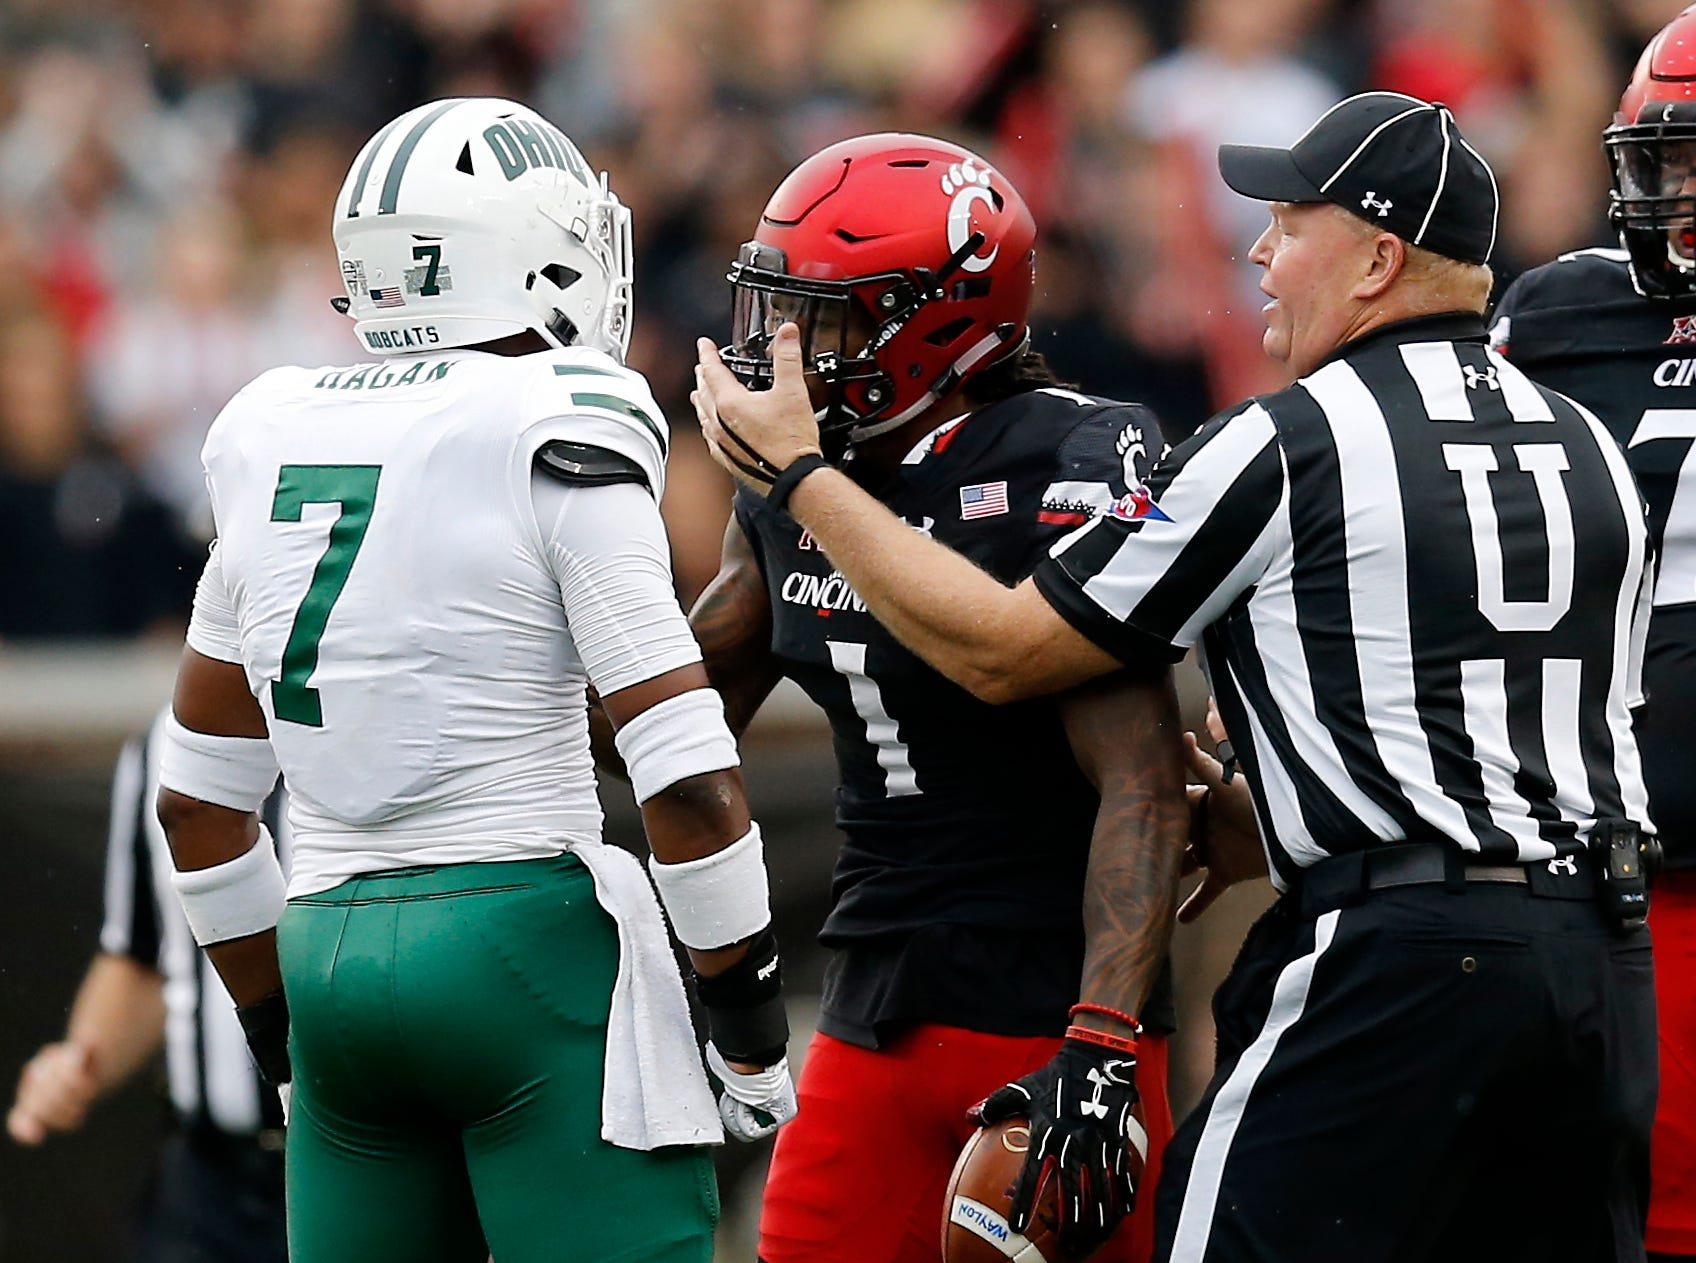 Ohio Bobcats safety Javon Hagan (7) and Cincinnati Bearcats wide receiver Kahlil Lewis (1) are separated by an official after a play in the second quarter of the NCAA football game between the Cincinnati Bearcats and the Ohio Bobcats at Nippert Stadium on the University of Cincinnati campus in Cincinnati on Saturday, Sept. 22, 2018. The Bobcats led 24-7 at halftime.